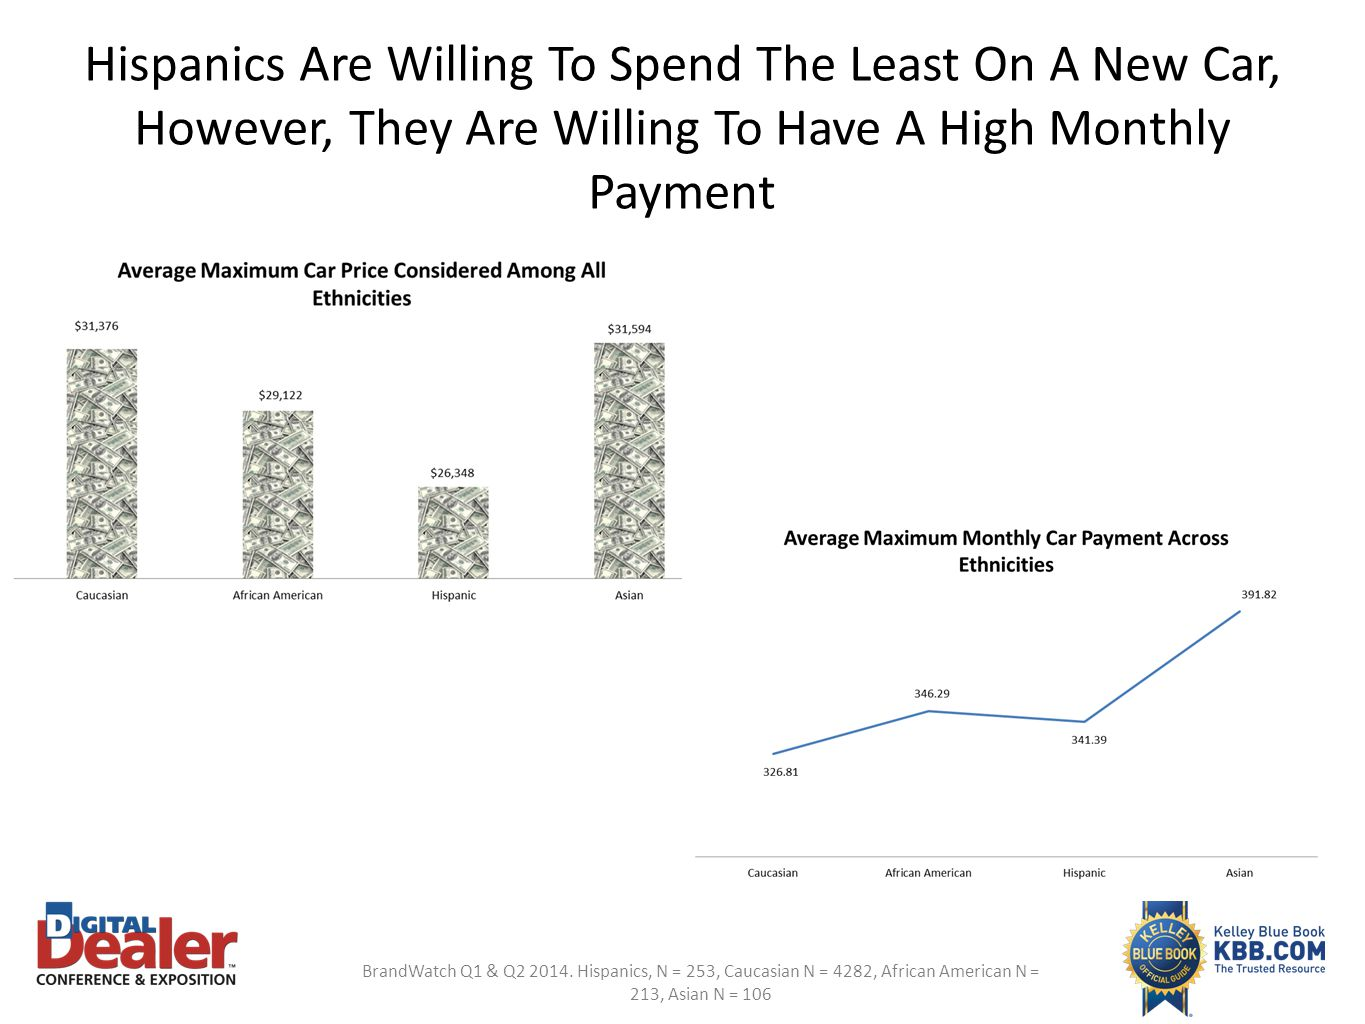 Hispanics Are Willing To Spend The Least On A New Car, However, They Are Willing To Have A High Monthly Payment BrandWatch Q1 & Q2 2014. Hispanics, N